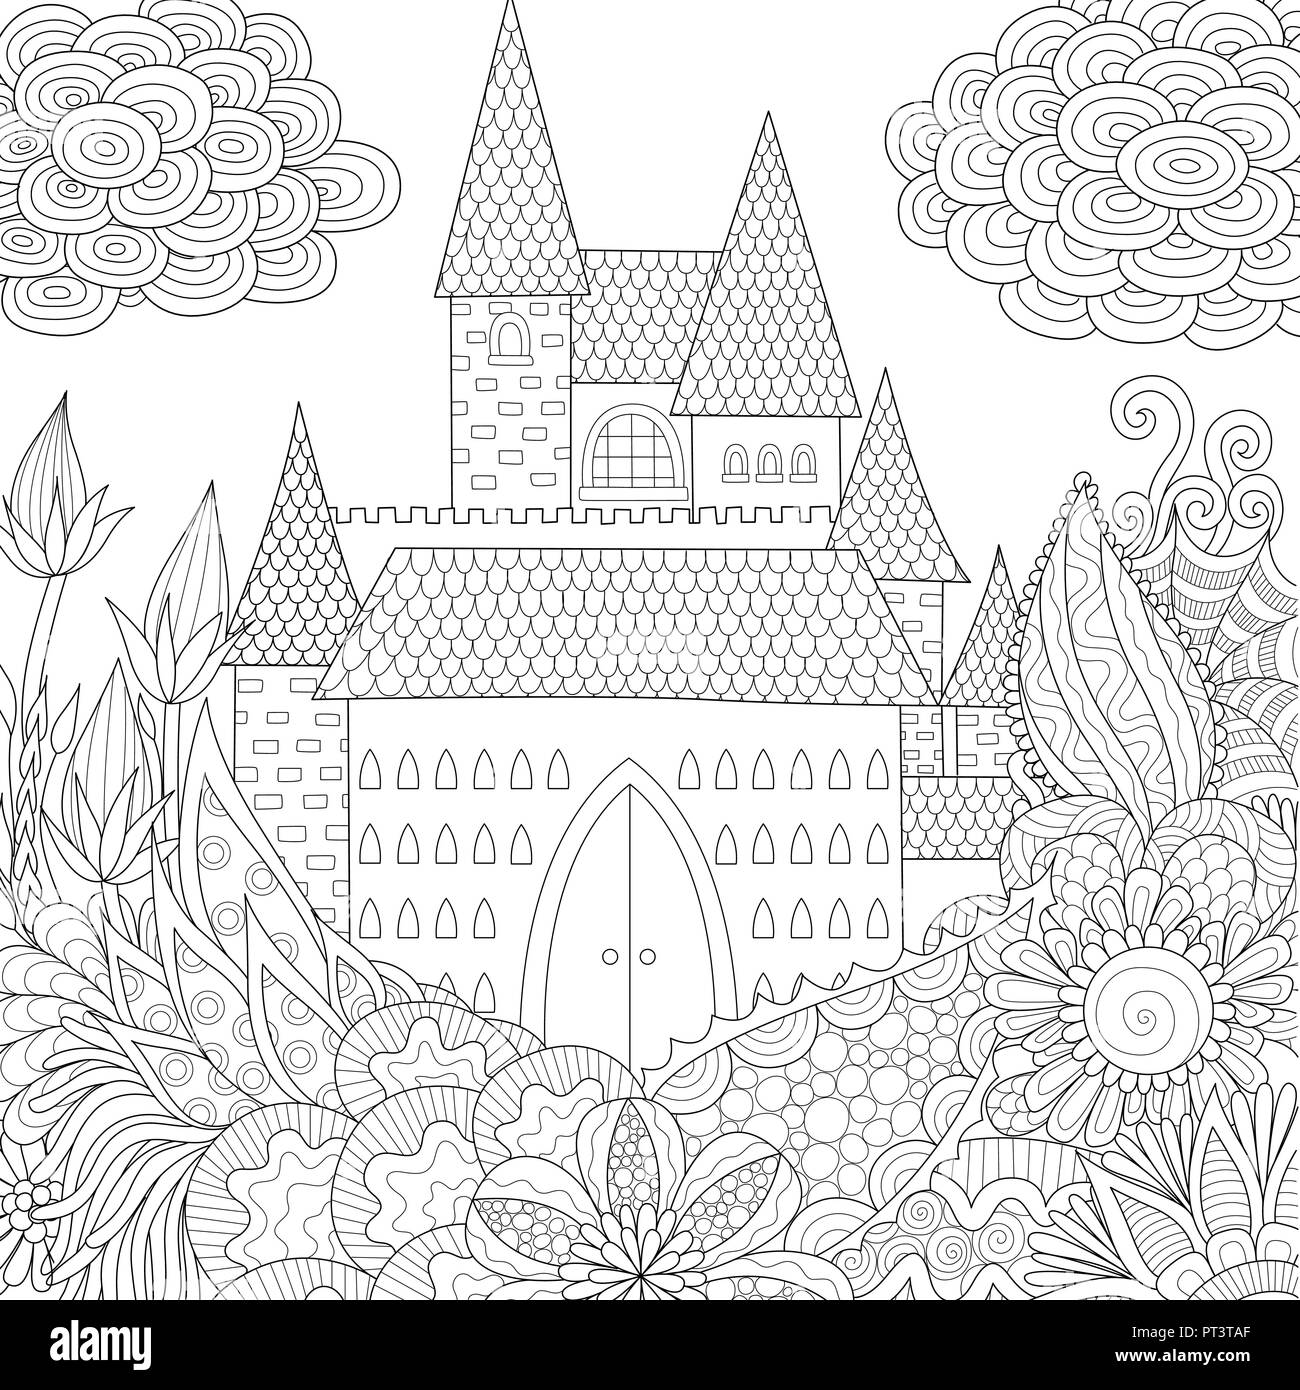 Line Art Design Of Jungle And Castle Coloring Book For Adults